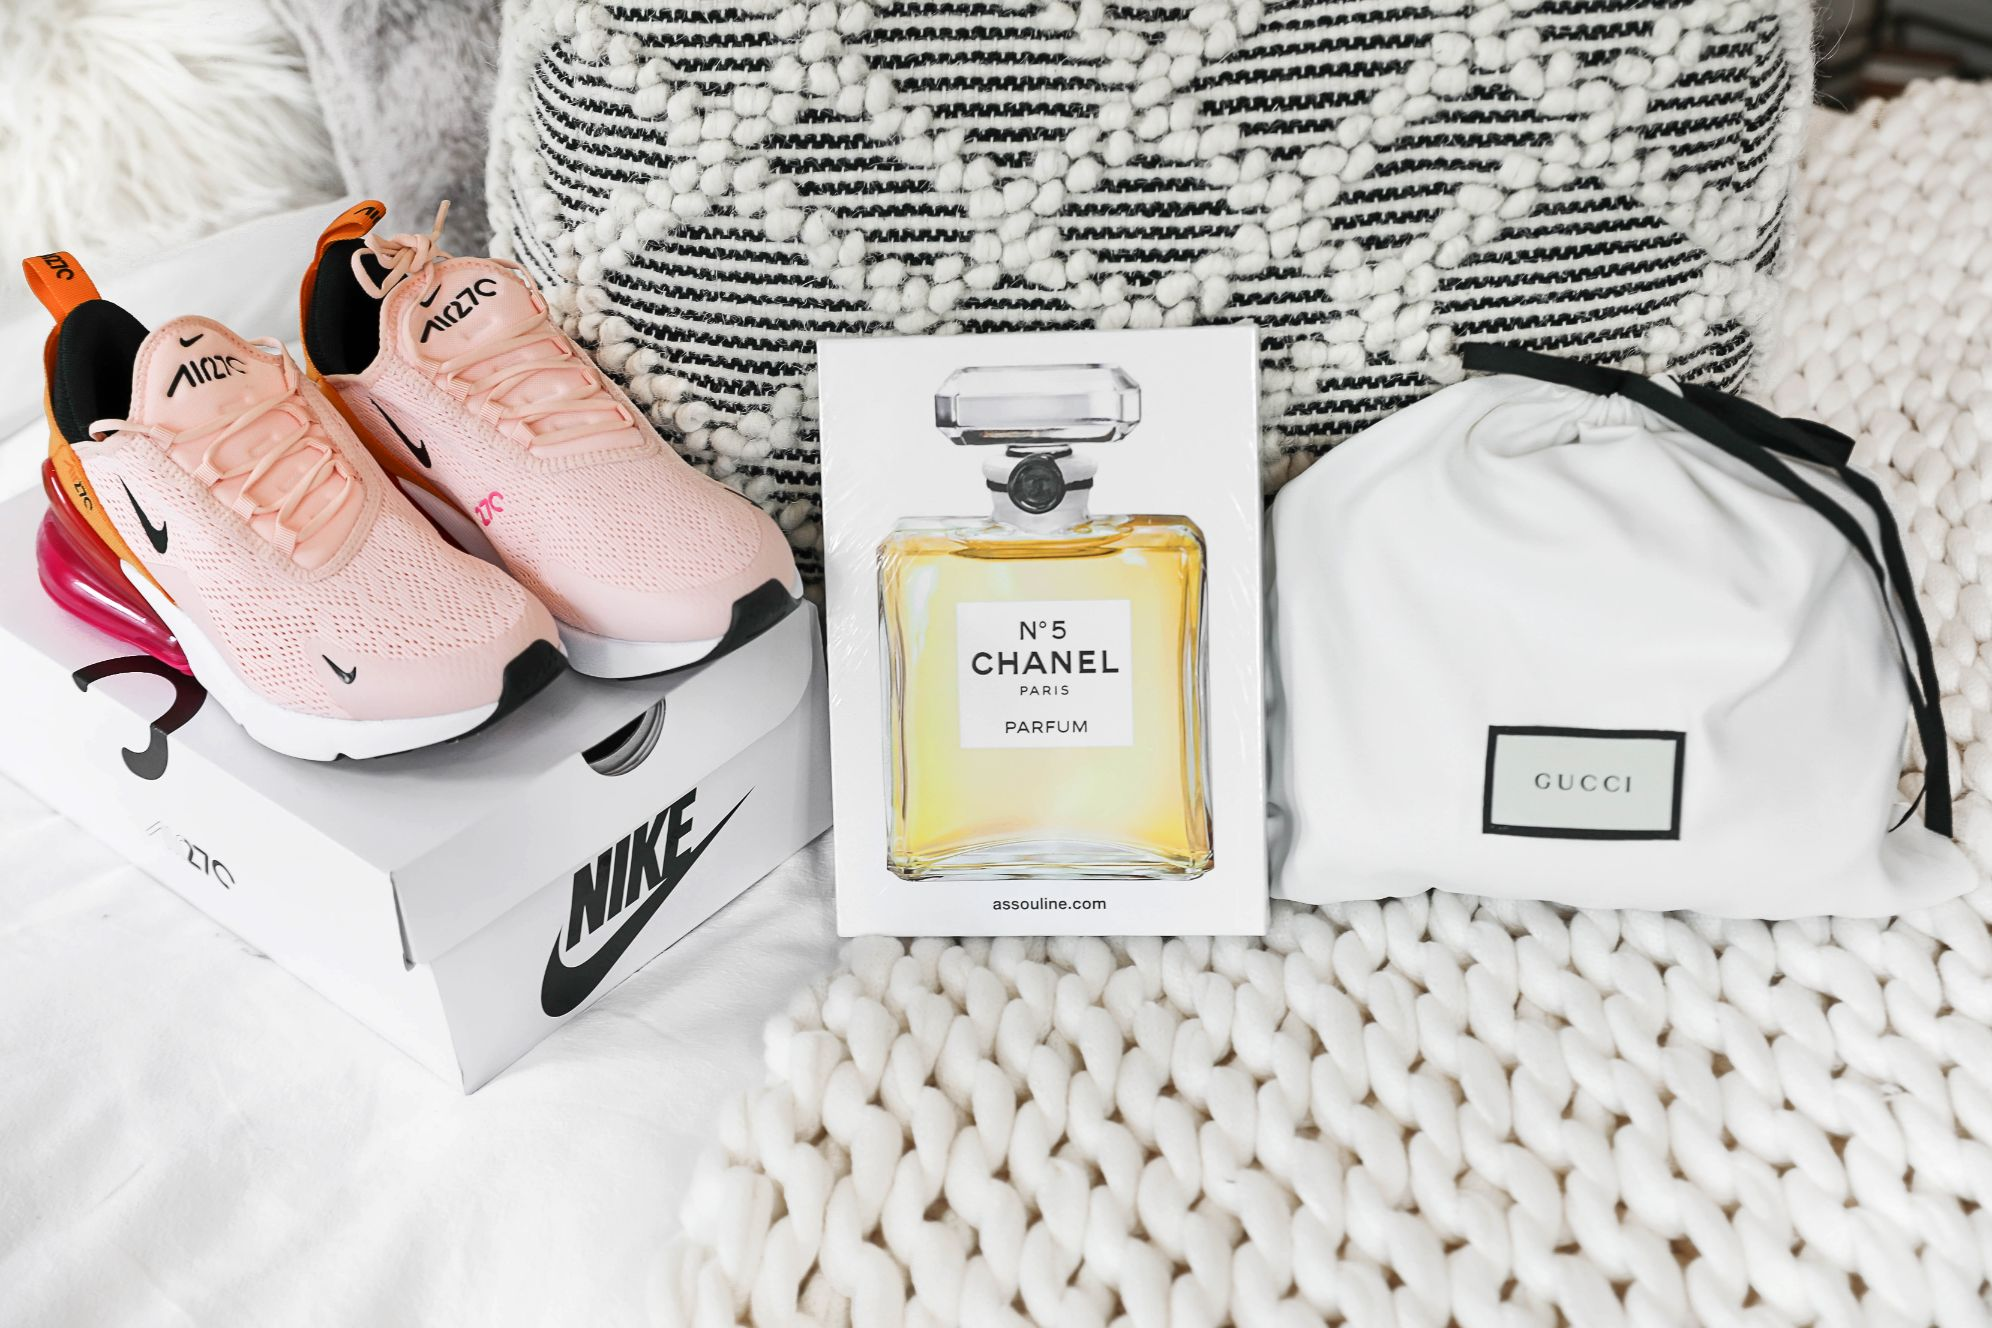 What I got for my 22nd birthday! A fun PRESENT HAUL including something Gucci! All detail on fashion blog daily dose of charm by lauren lindmark